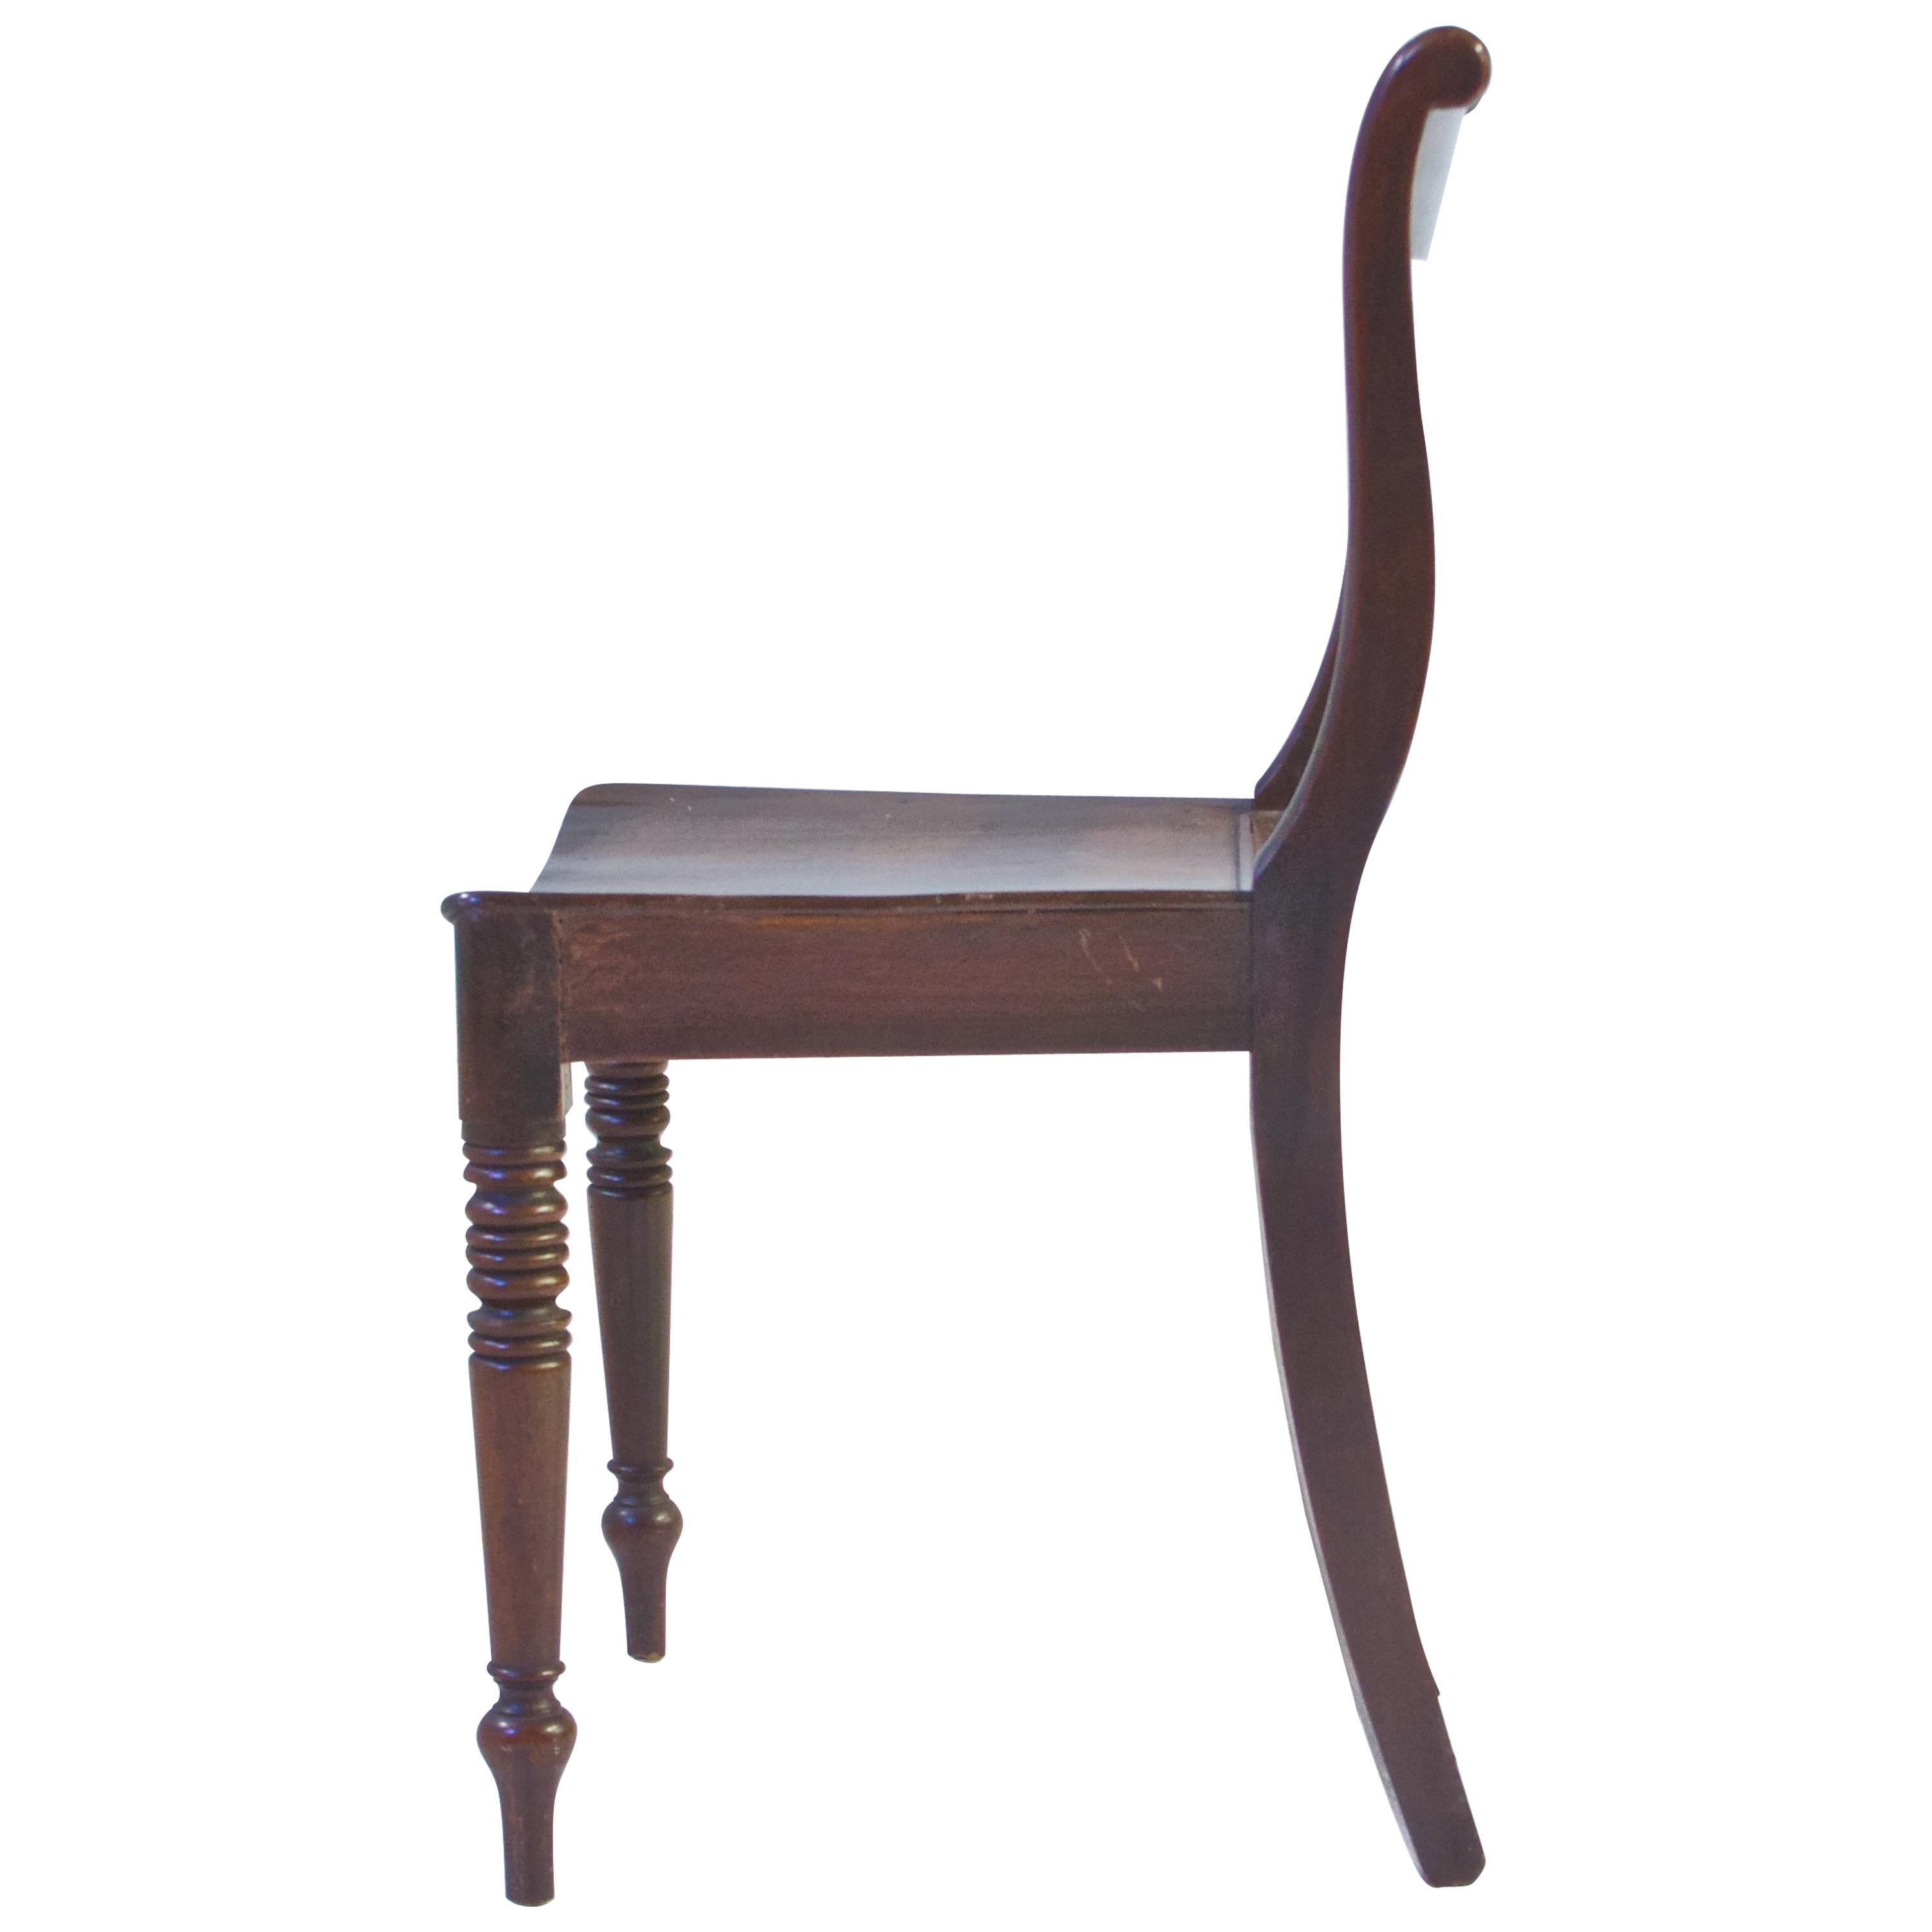 Late 19th Century French Neoclassical Desk Chair in Cuban Mahogany